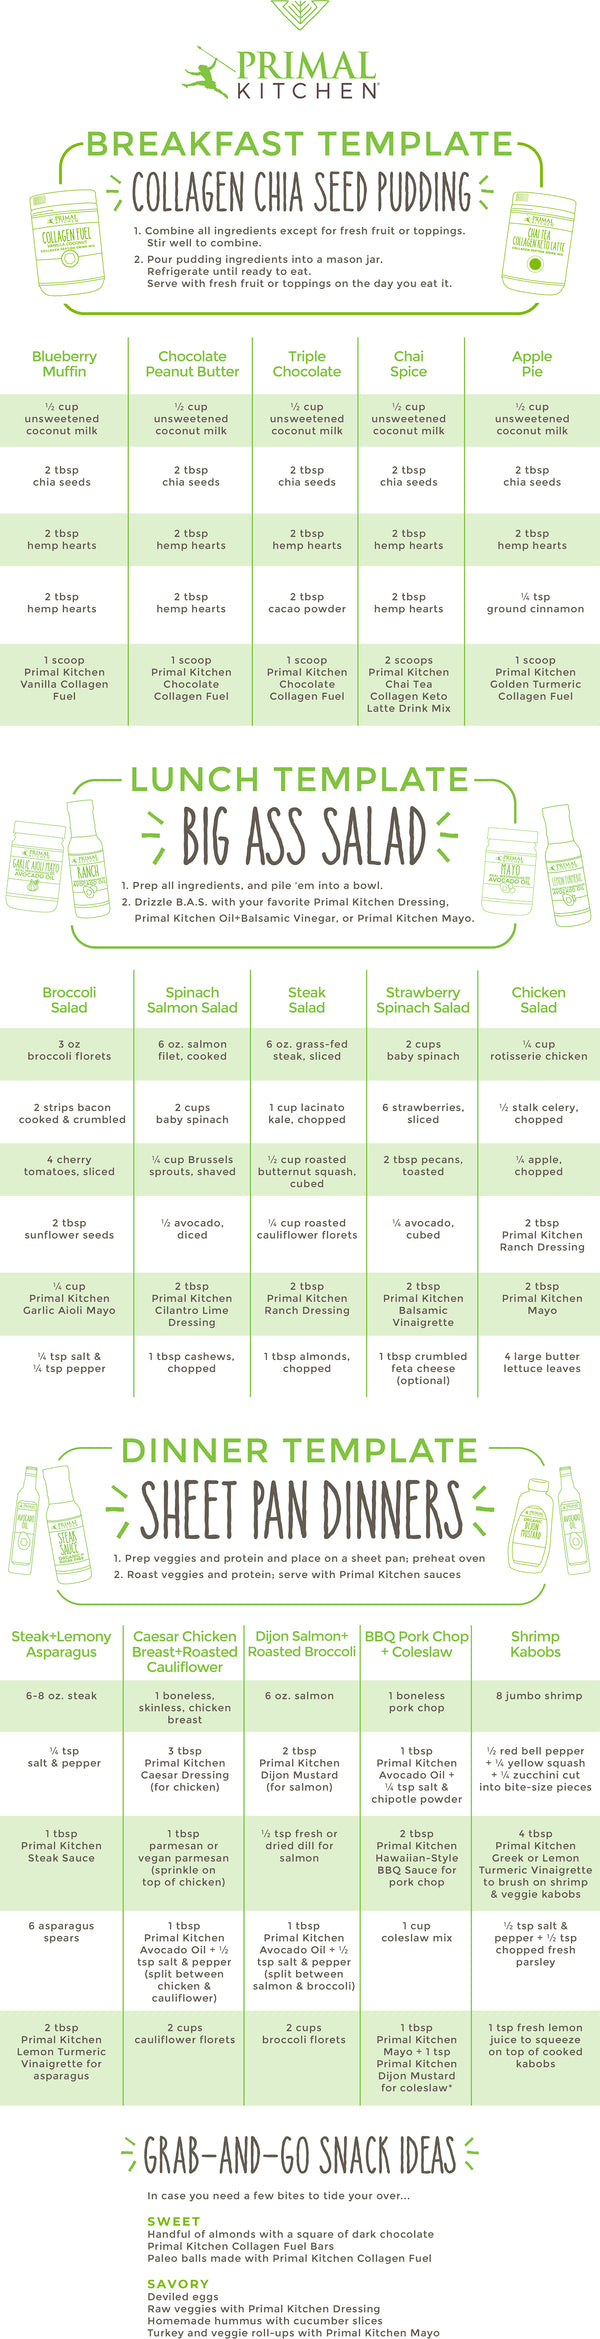 "Download or print this <a href=""https://cdn.shopify.com/s/files/1/2364/6329/files/Keto_Template_Infographic_r1.pdf?v=1602073787""> keto-friendly recipe template.</a>"